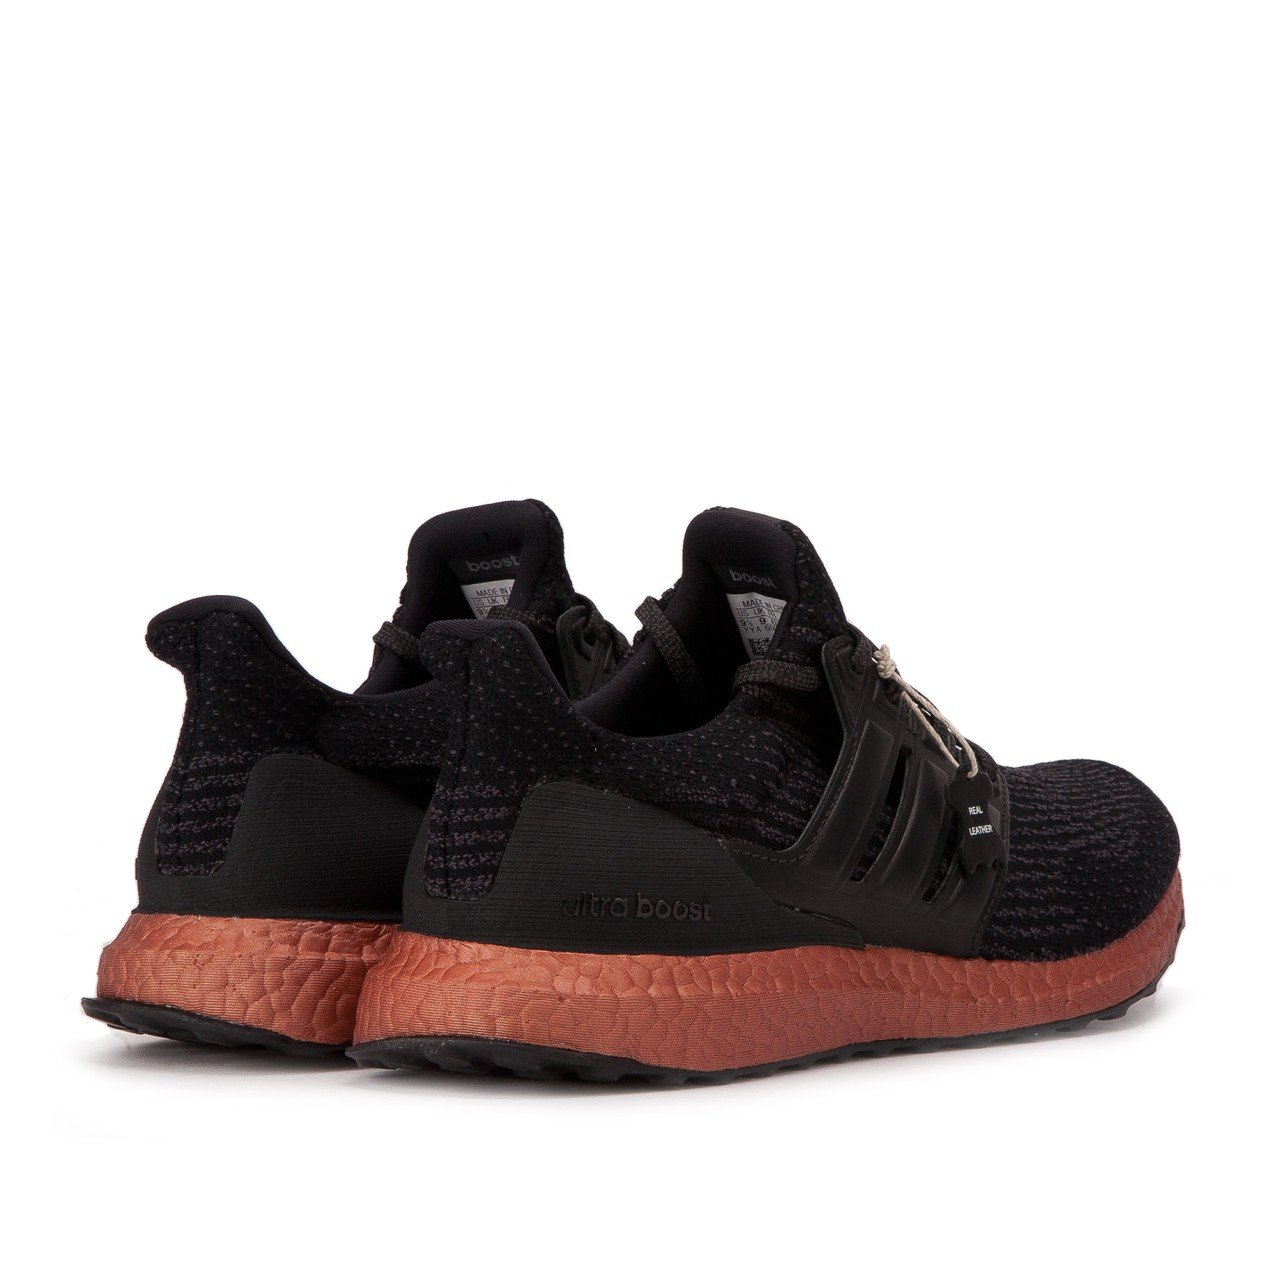 adidas Performance Men's Ultra Boost M Running Shoe Rust B01N7KIOQM 4 D(M) US|Black/Black/Tech Rust Shoe 496371